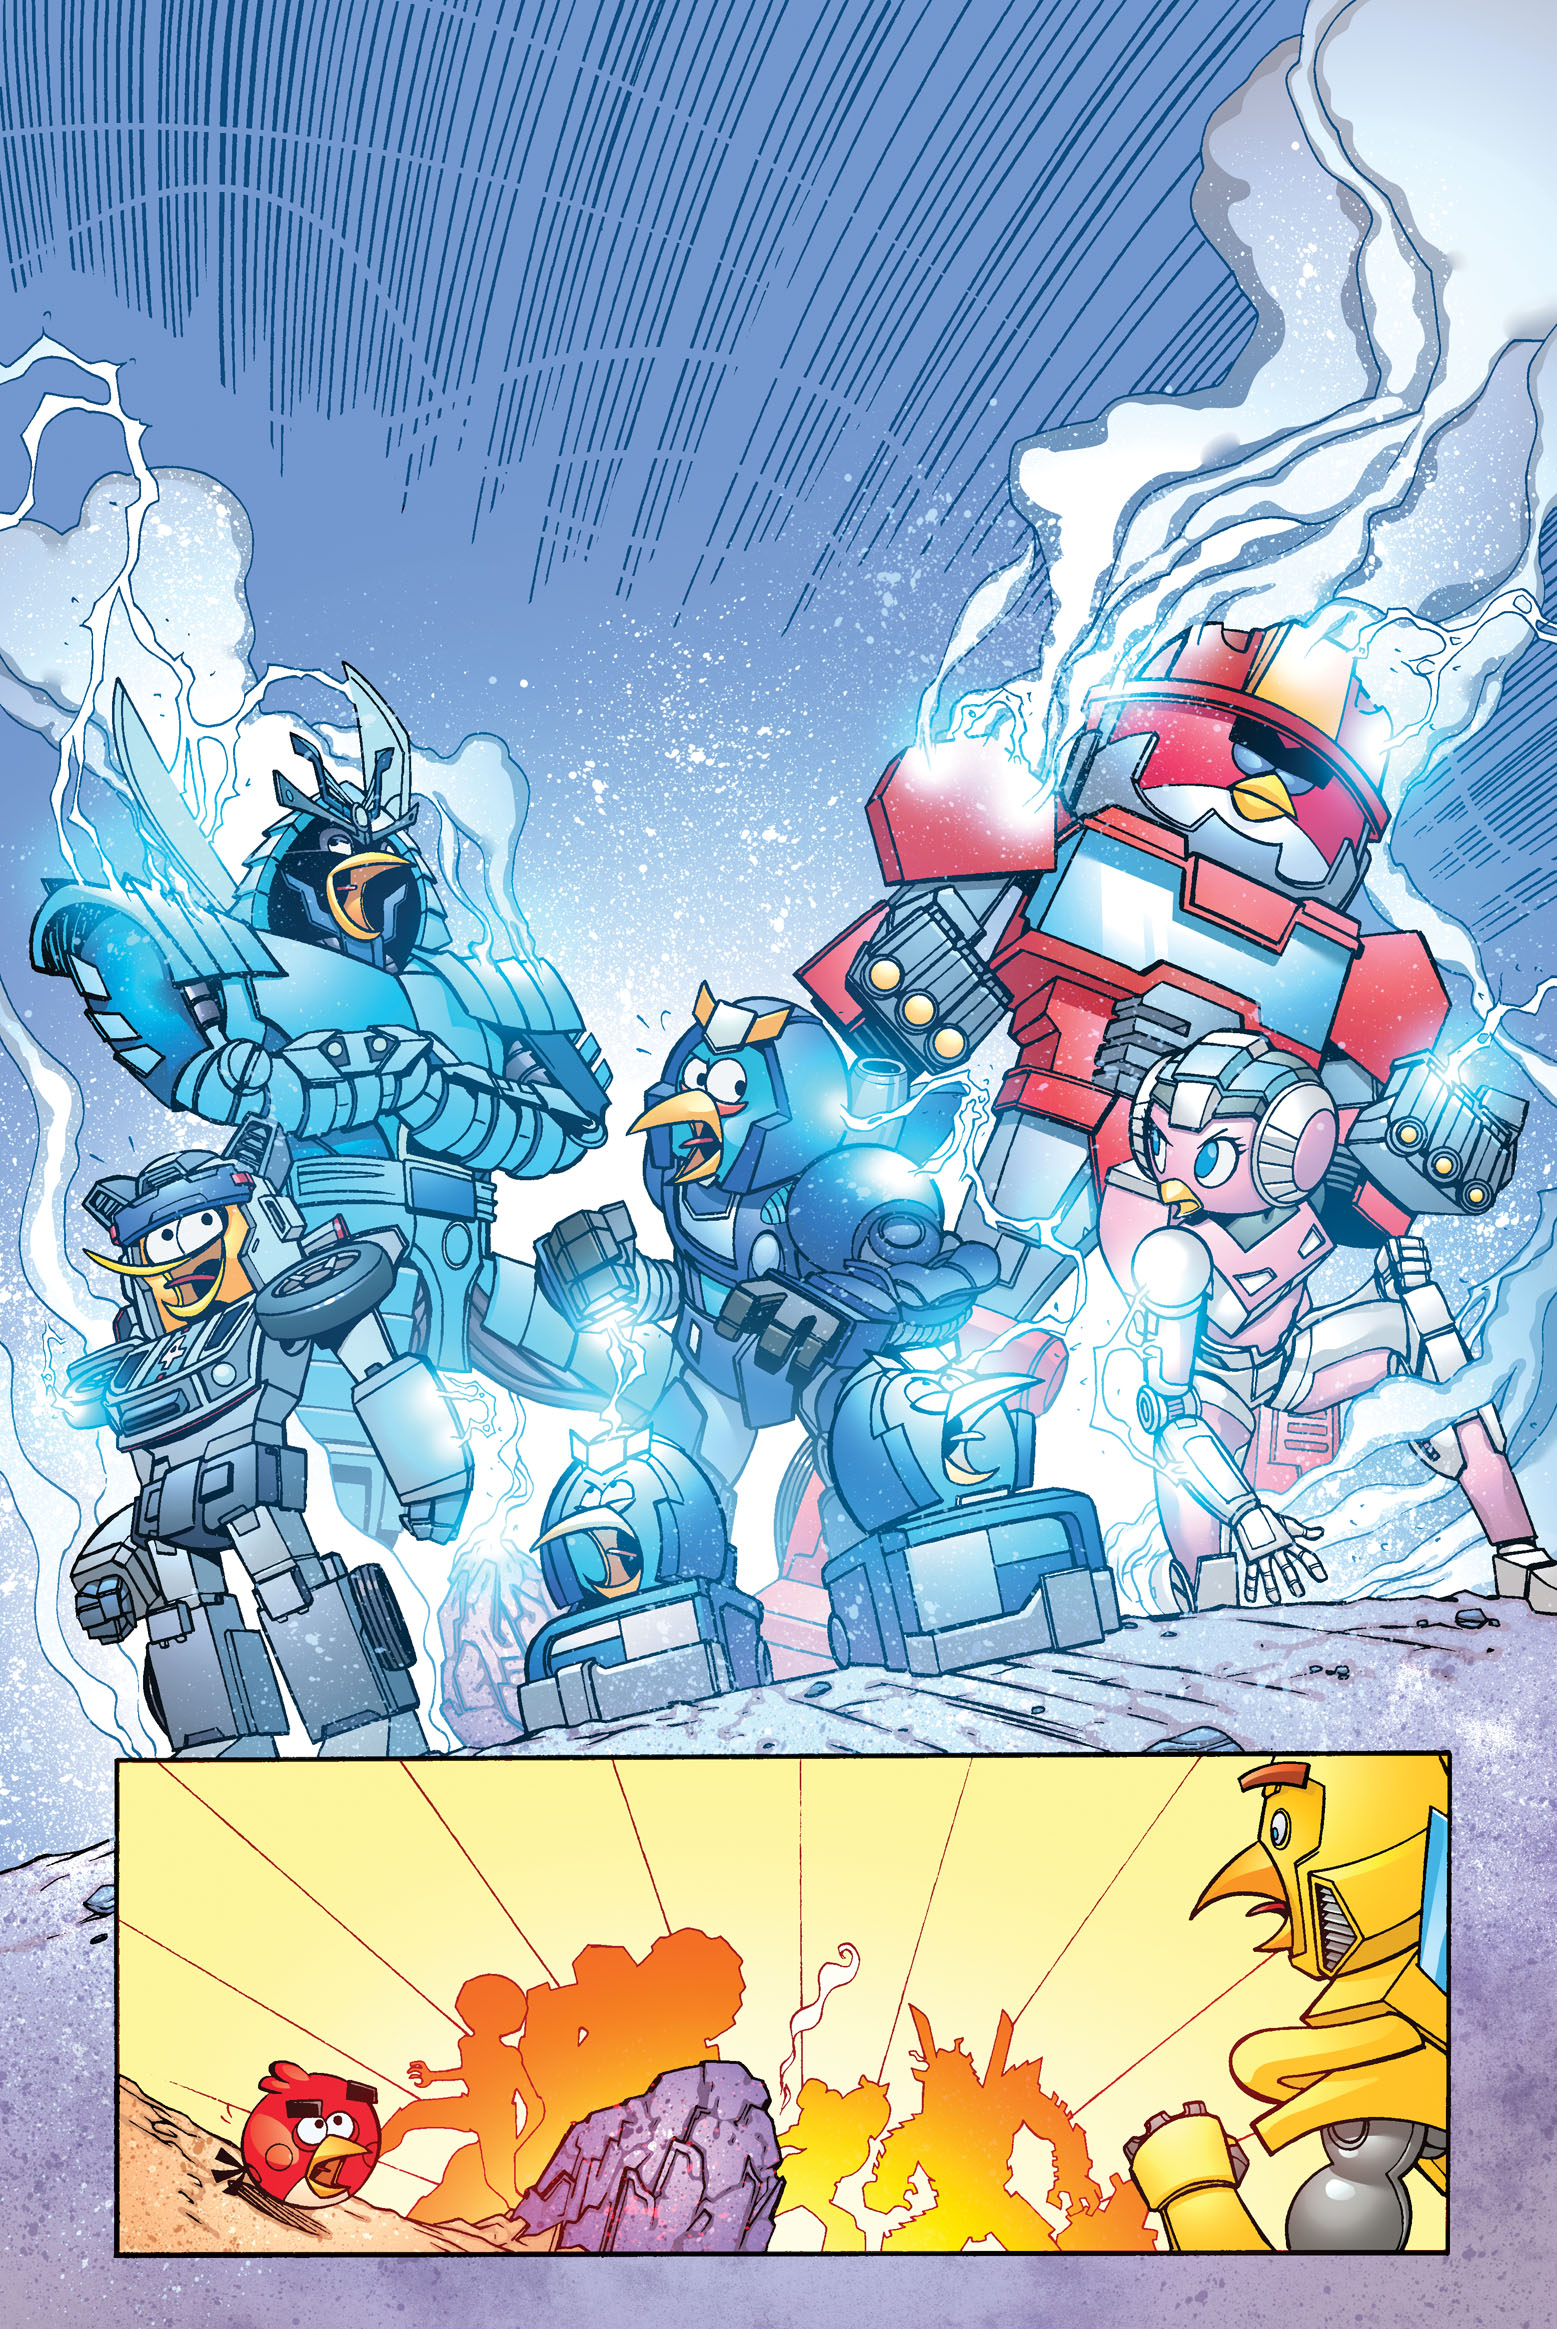 AngryBirds Transformers#2 - IDW